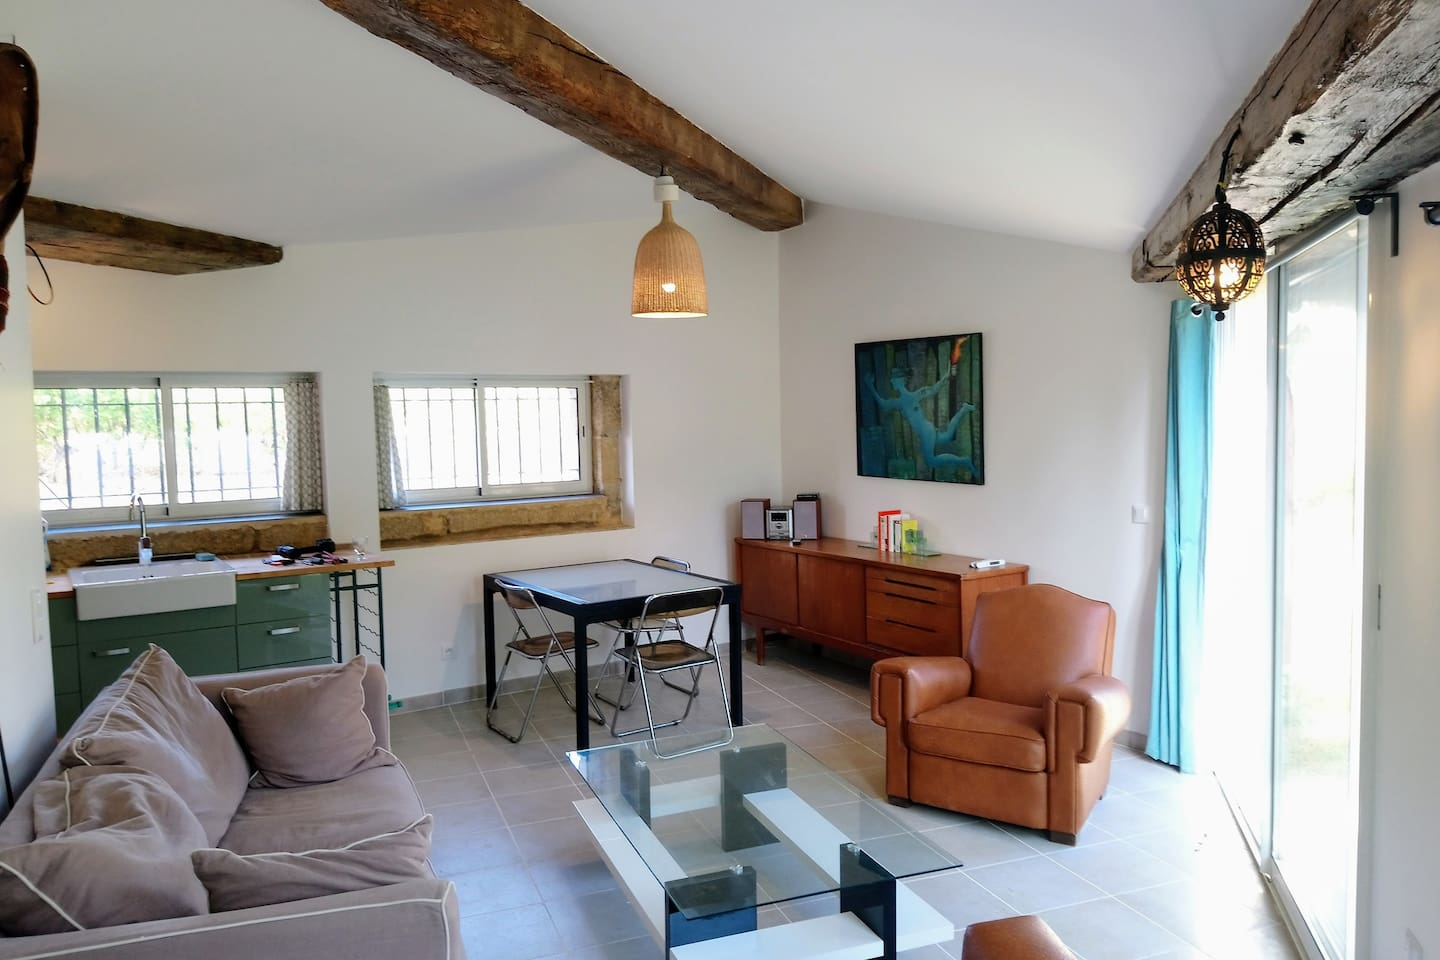 NEW! Nice cottage in the heart of a vineyard b&b - Guesthouses for ...